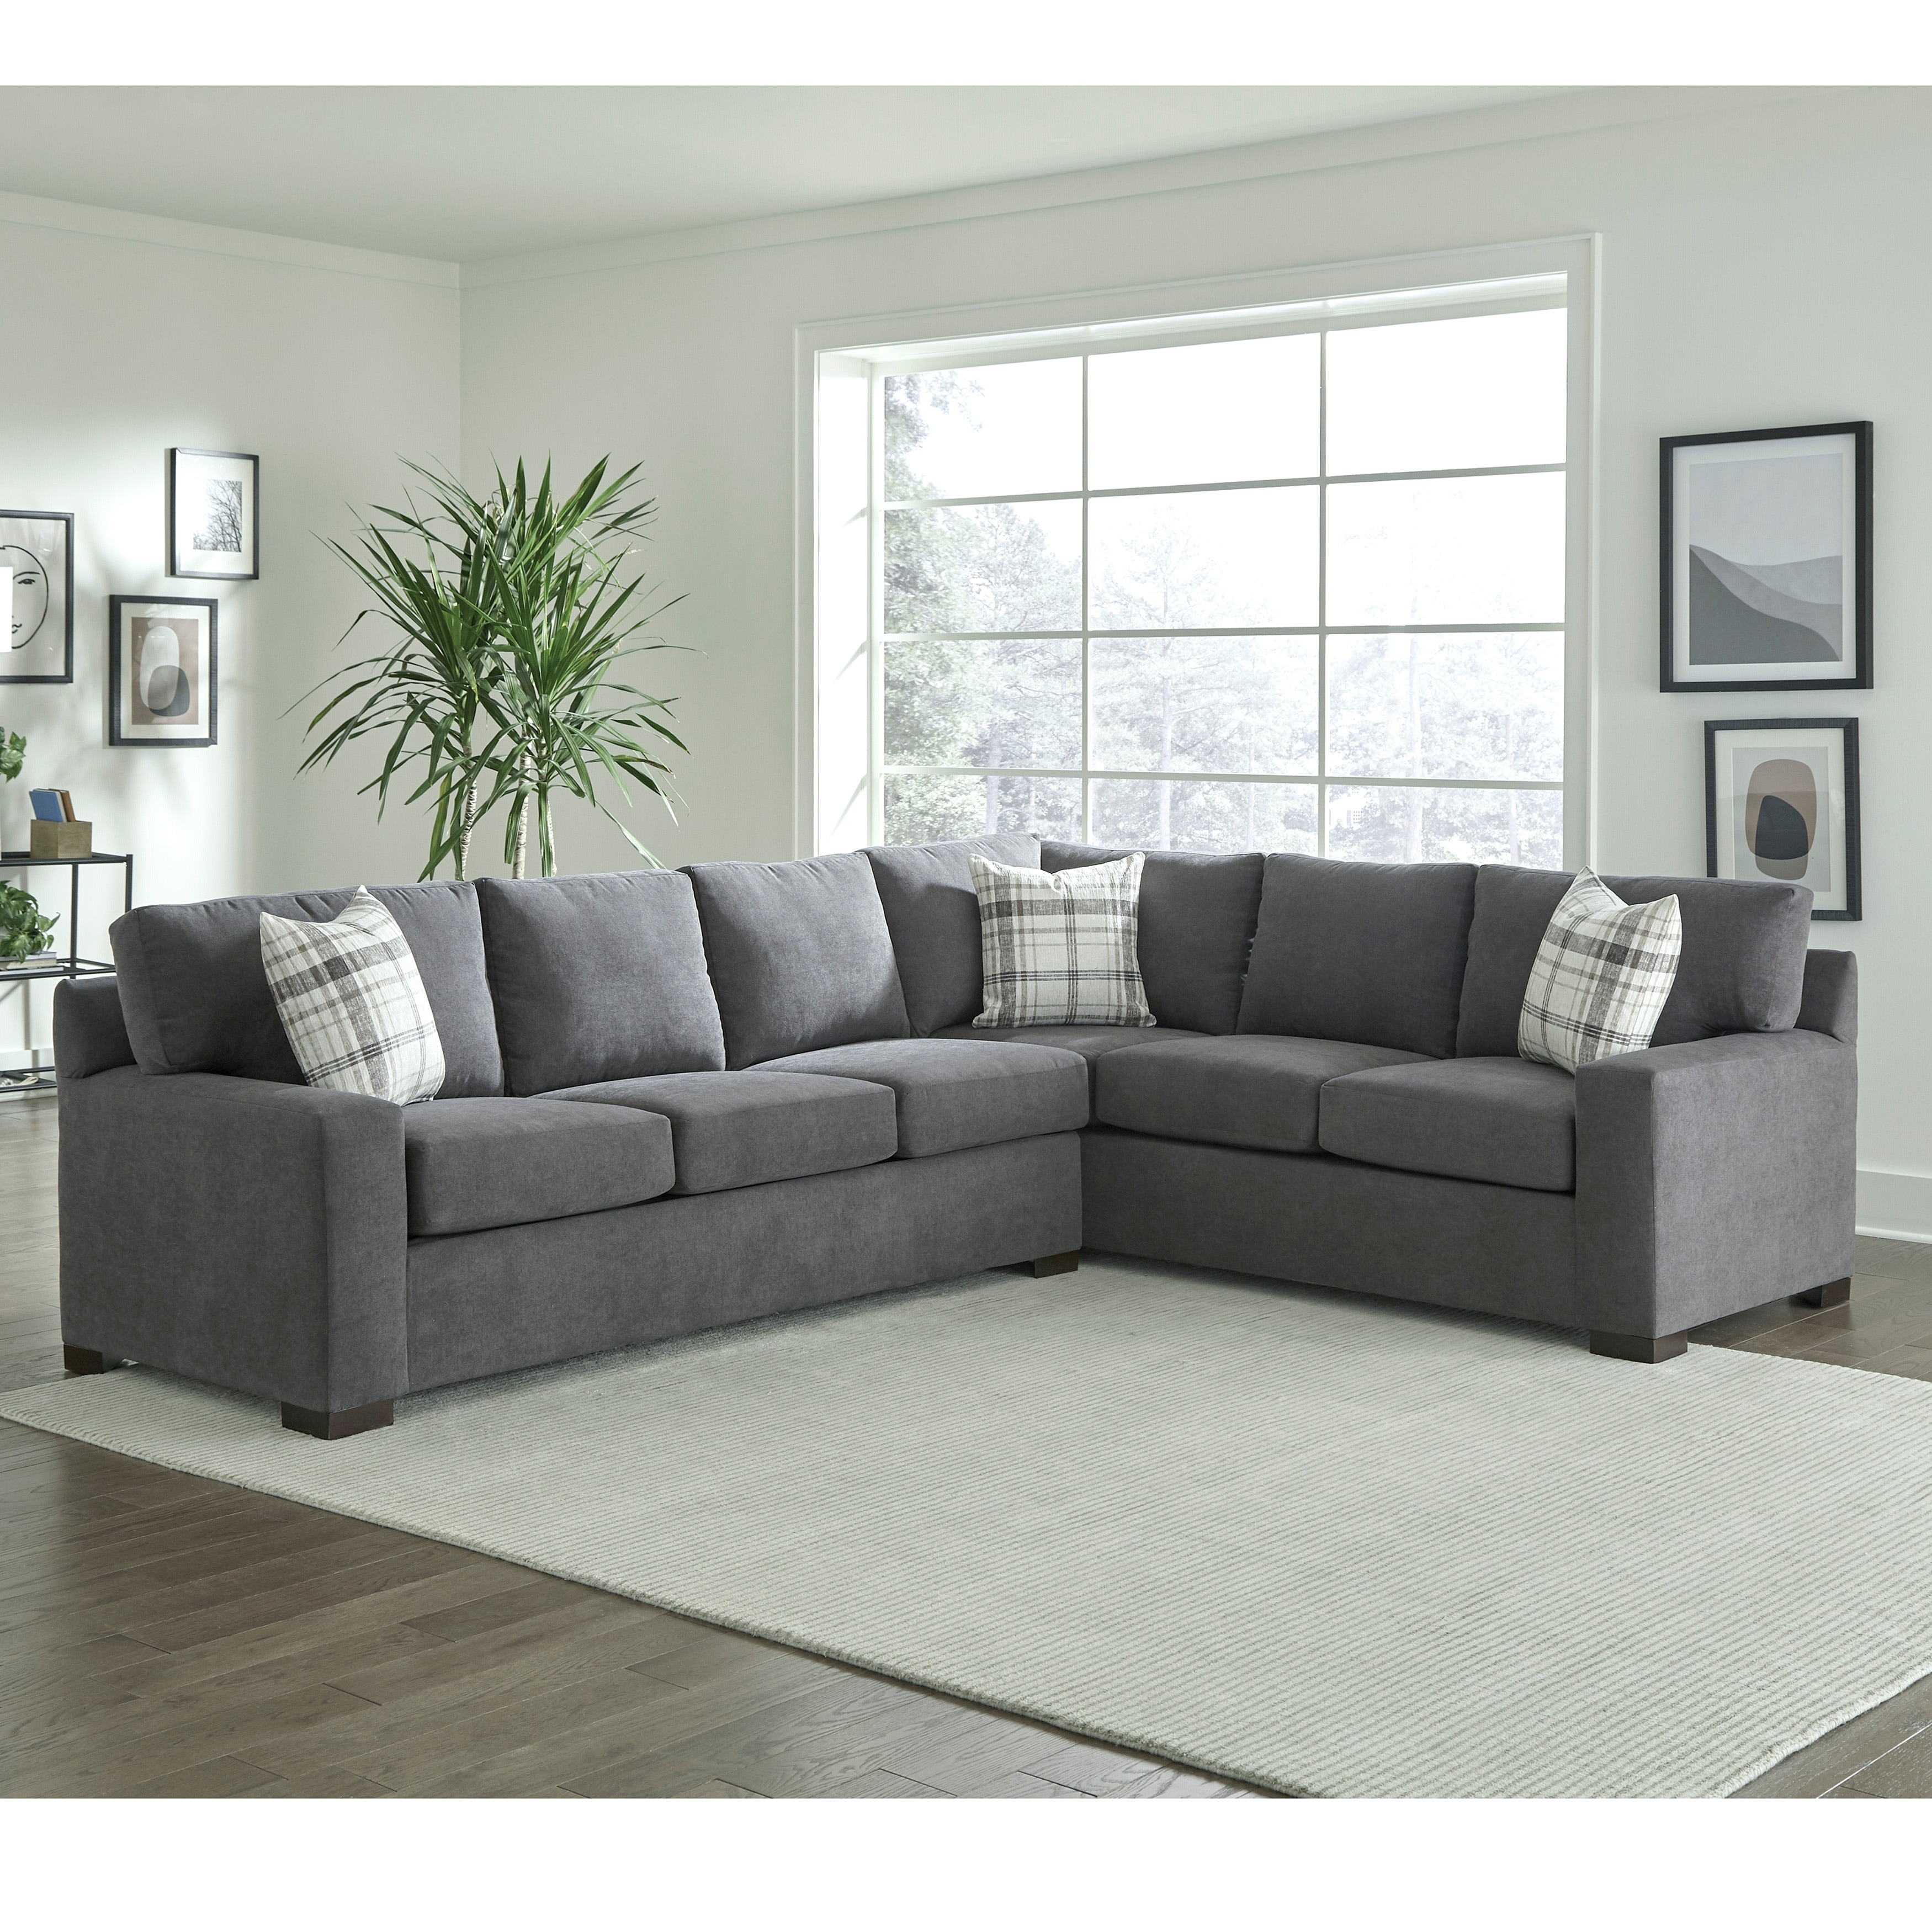 Picture of: Gerard Grey Sectional Sofa Bed With Queen Gel Memory Foam Mattress Overstock 31286320